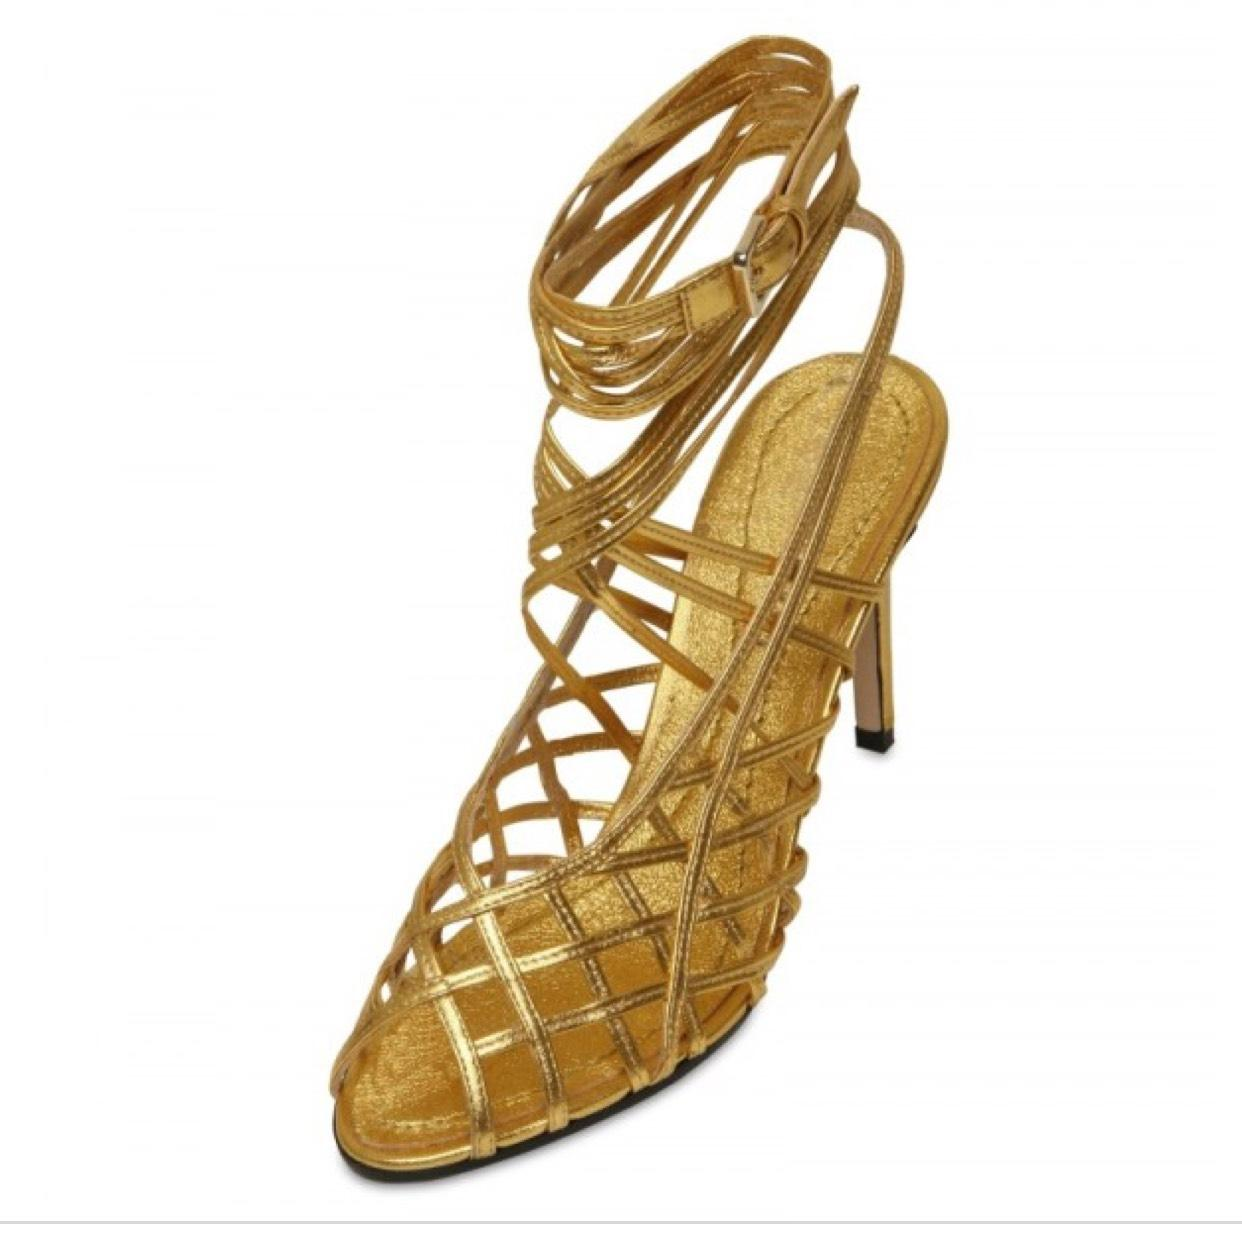 Emilio Pucci Leather Cage Sandals fashionable online outlet store sale online nicekicks for sale cheap for sale 0PVihPc